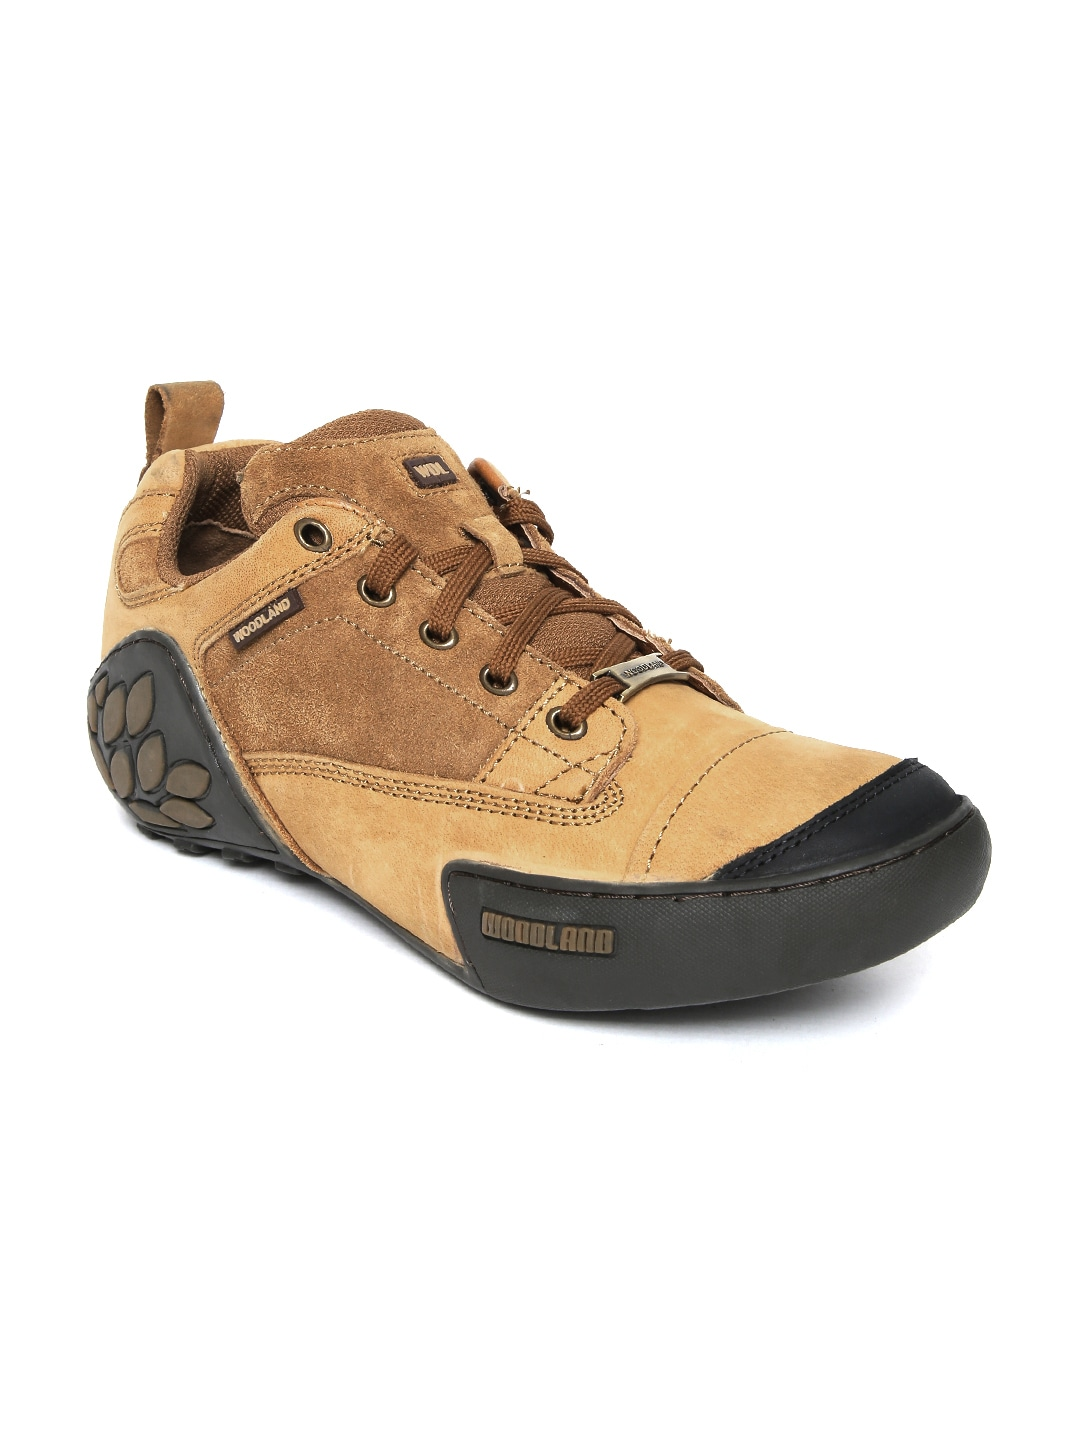 ec59acf0bc86f Woodland Shoes - Buy Genuine Woodland Shoes Online At Best Price - Myntra